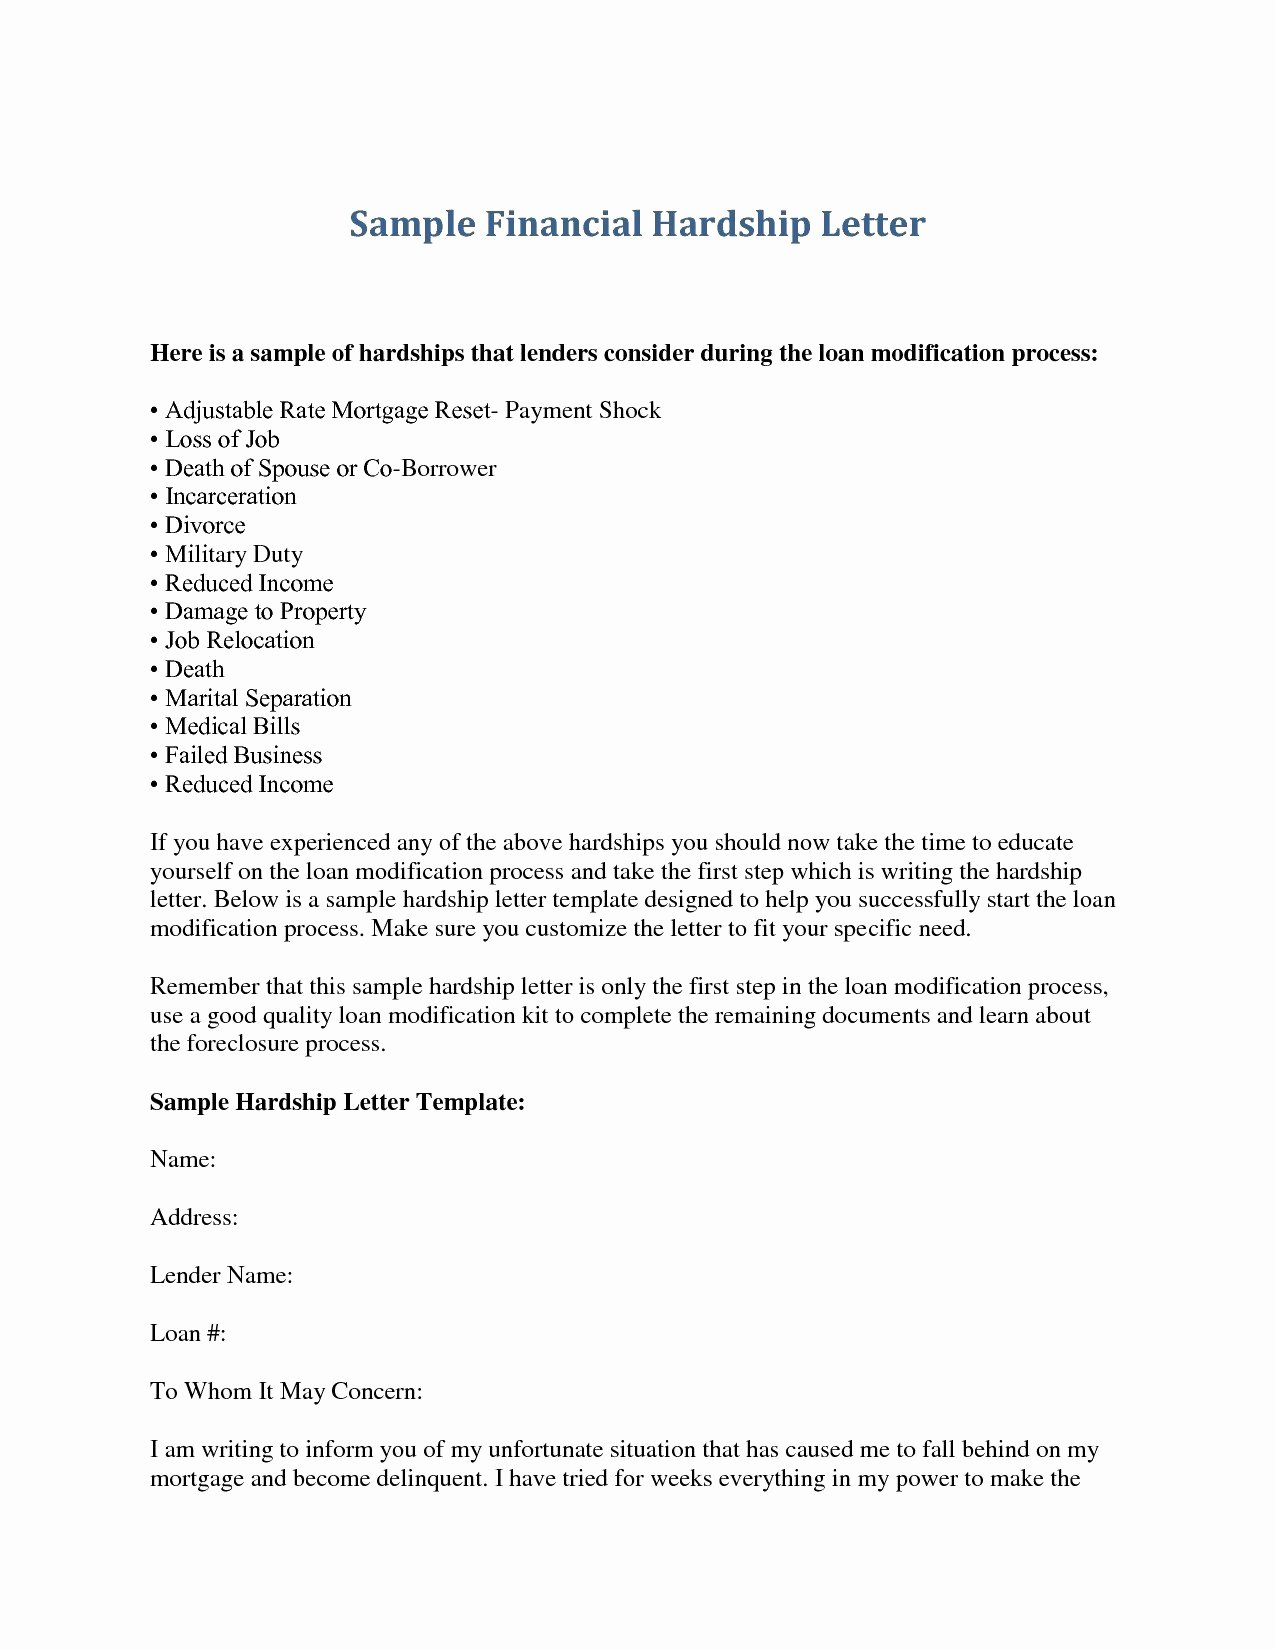 Hardship Letter Template for Loan Modification Request Inspirational Valid Hardship Letter Example Loan Modification